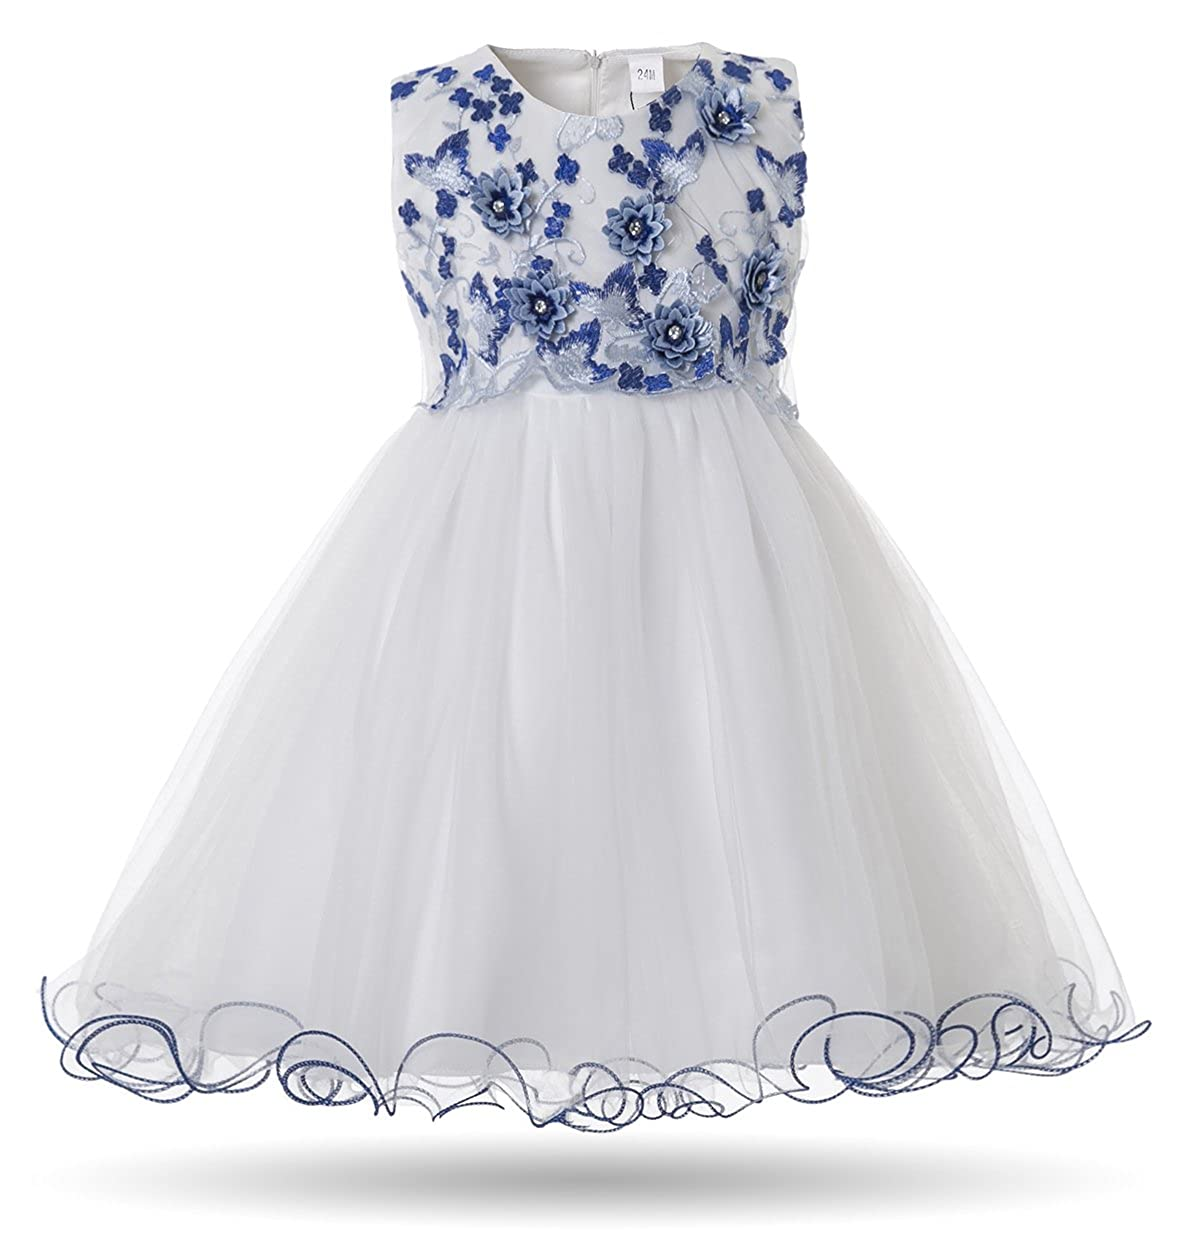 def04c1a9 Amazon.com: CIELARKO Baby Girl Dress Infant Flower Lace Wedding Party  Dresses for 0-24 Months ...: Clothing